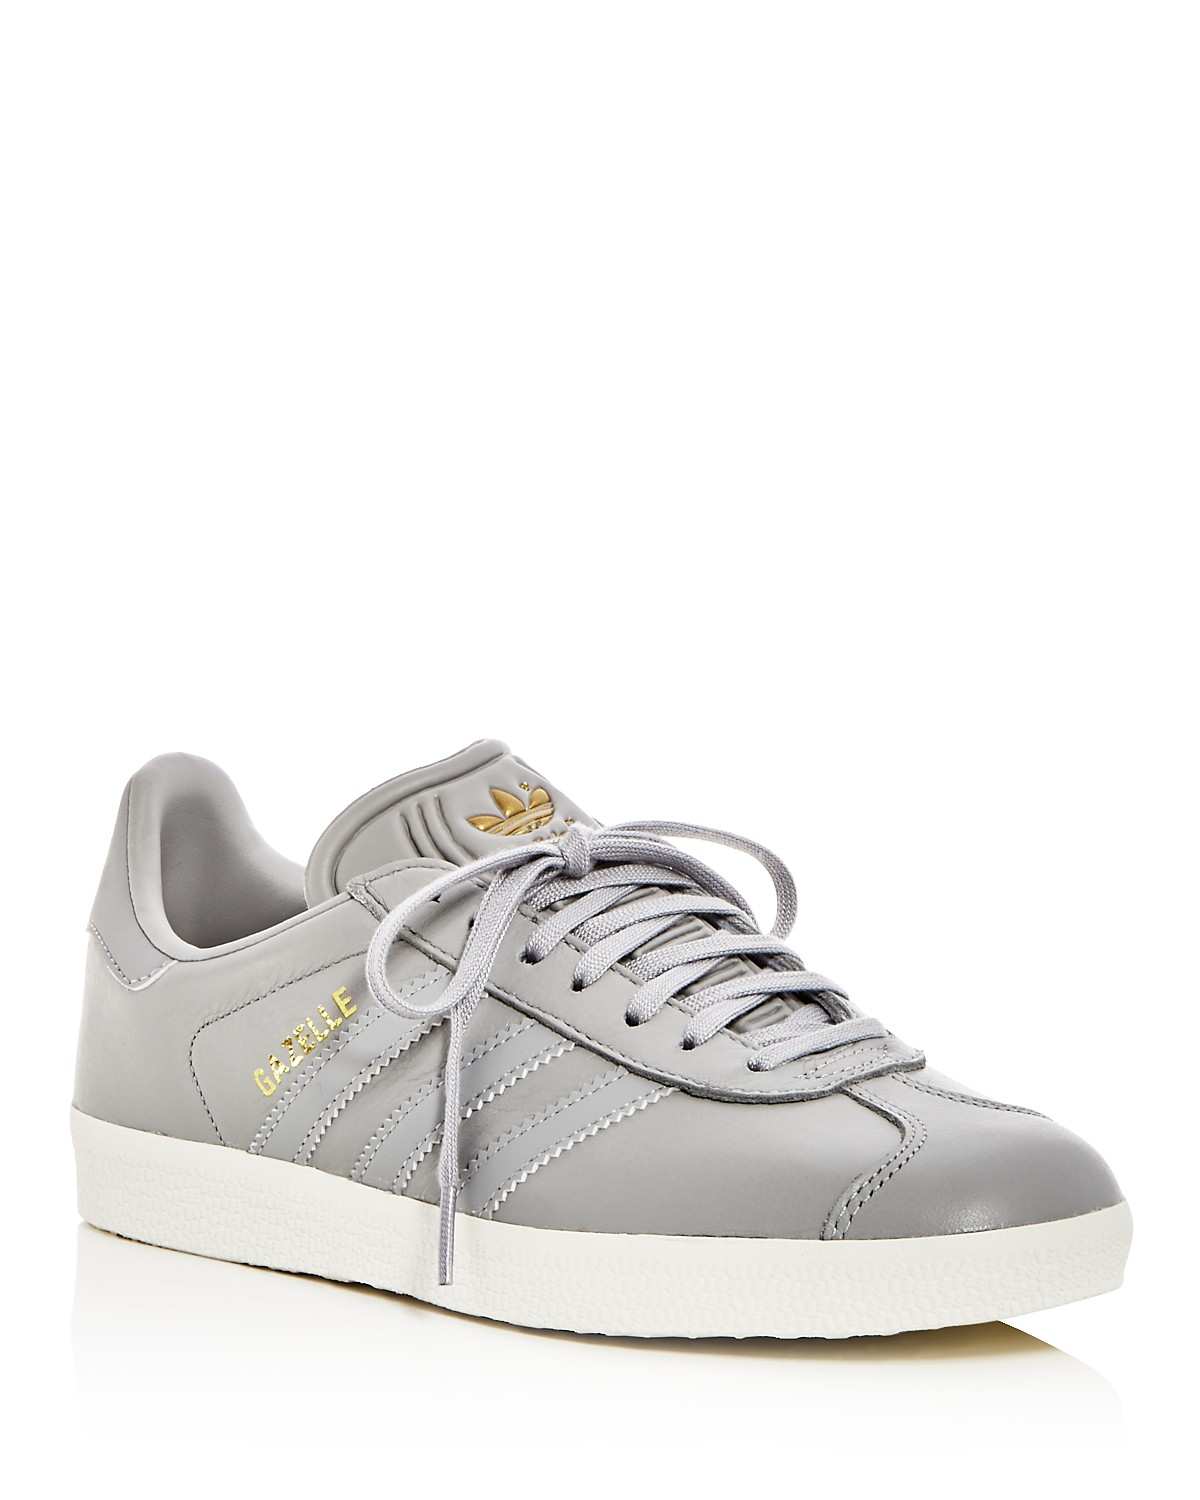 adidas Women's Gazelle Leather Lace Up Sneakers t89rqM